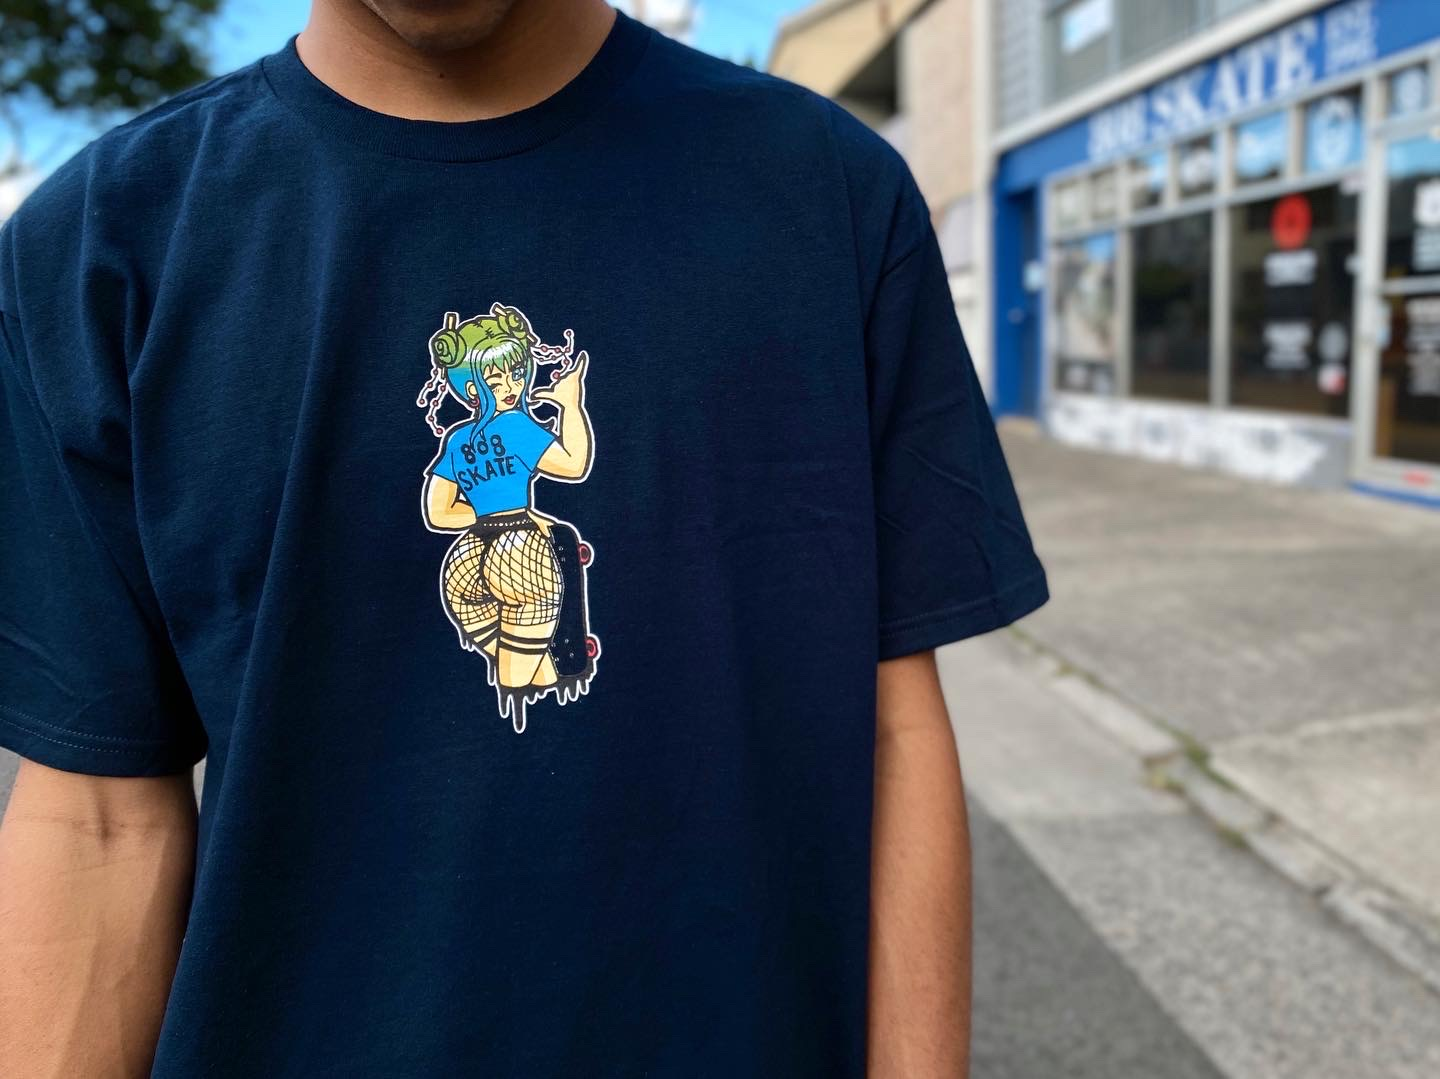 808 Skate Wink Tee now available in-store | online - Artwork by Wailani Morris